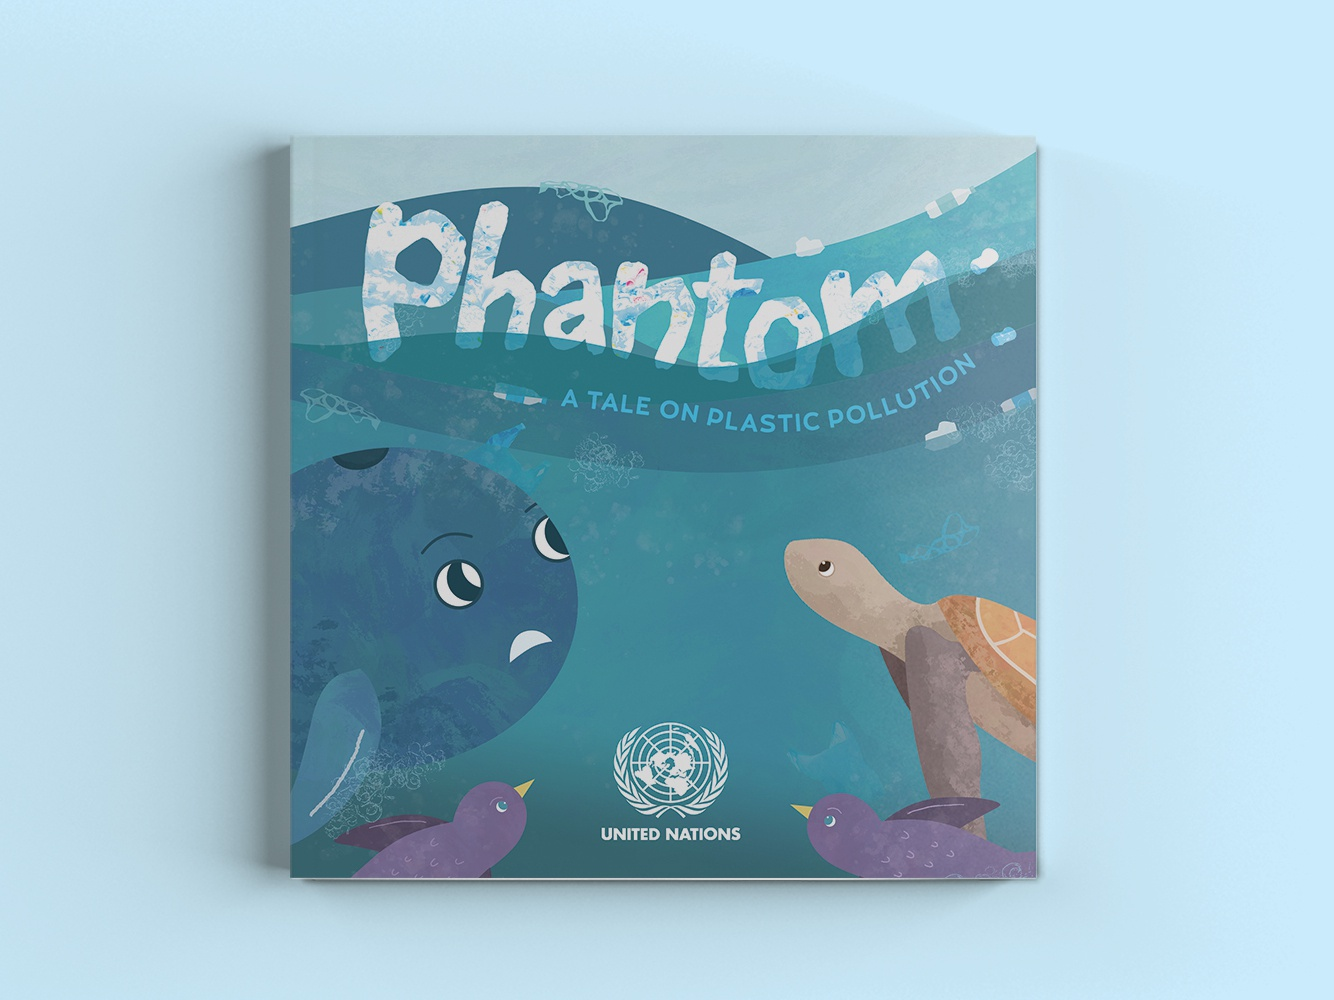 Phantom: A Tale on Plastic Pollution perception change project united nations childrens book book books book illustrations illustration art book design kids illustration childrens book illustration book illustration book cover illustration